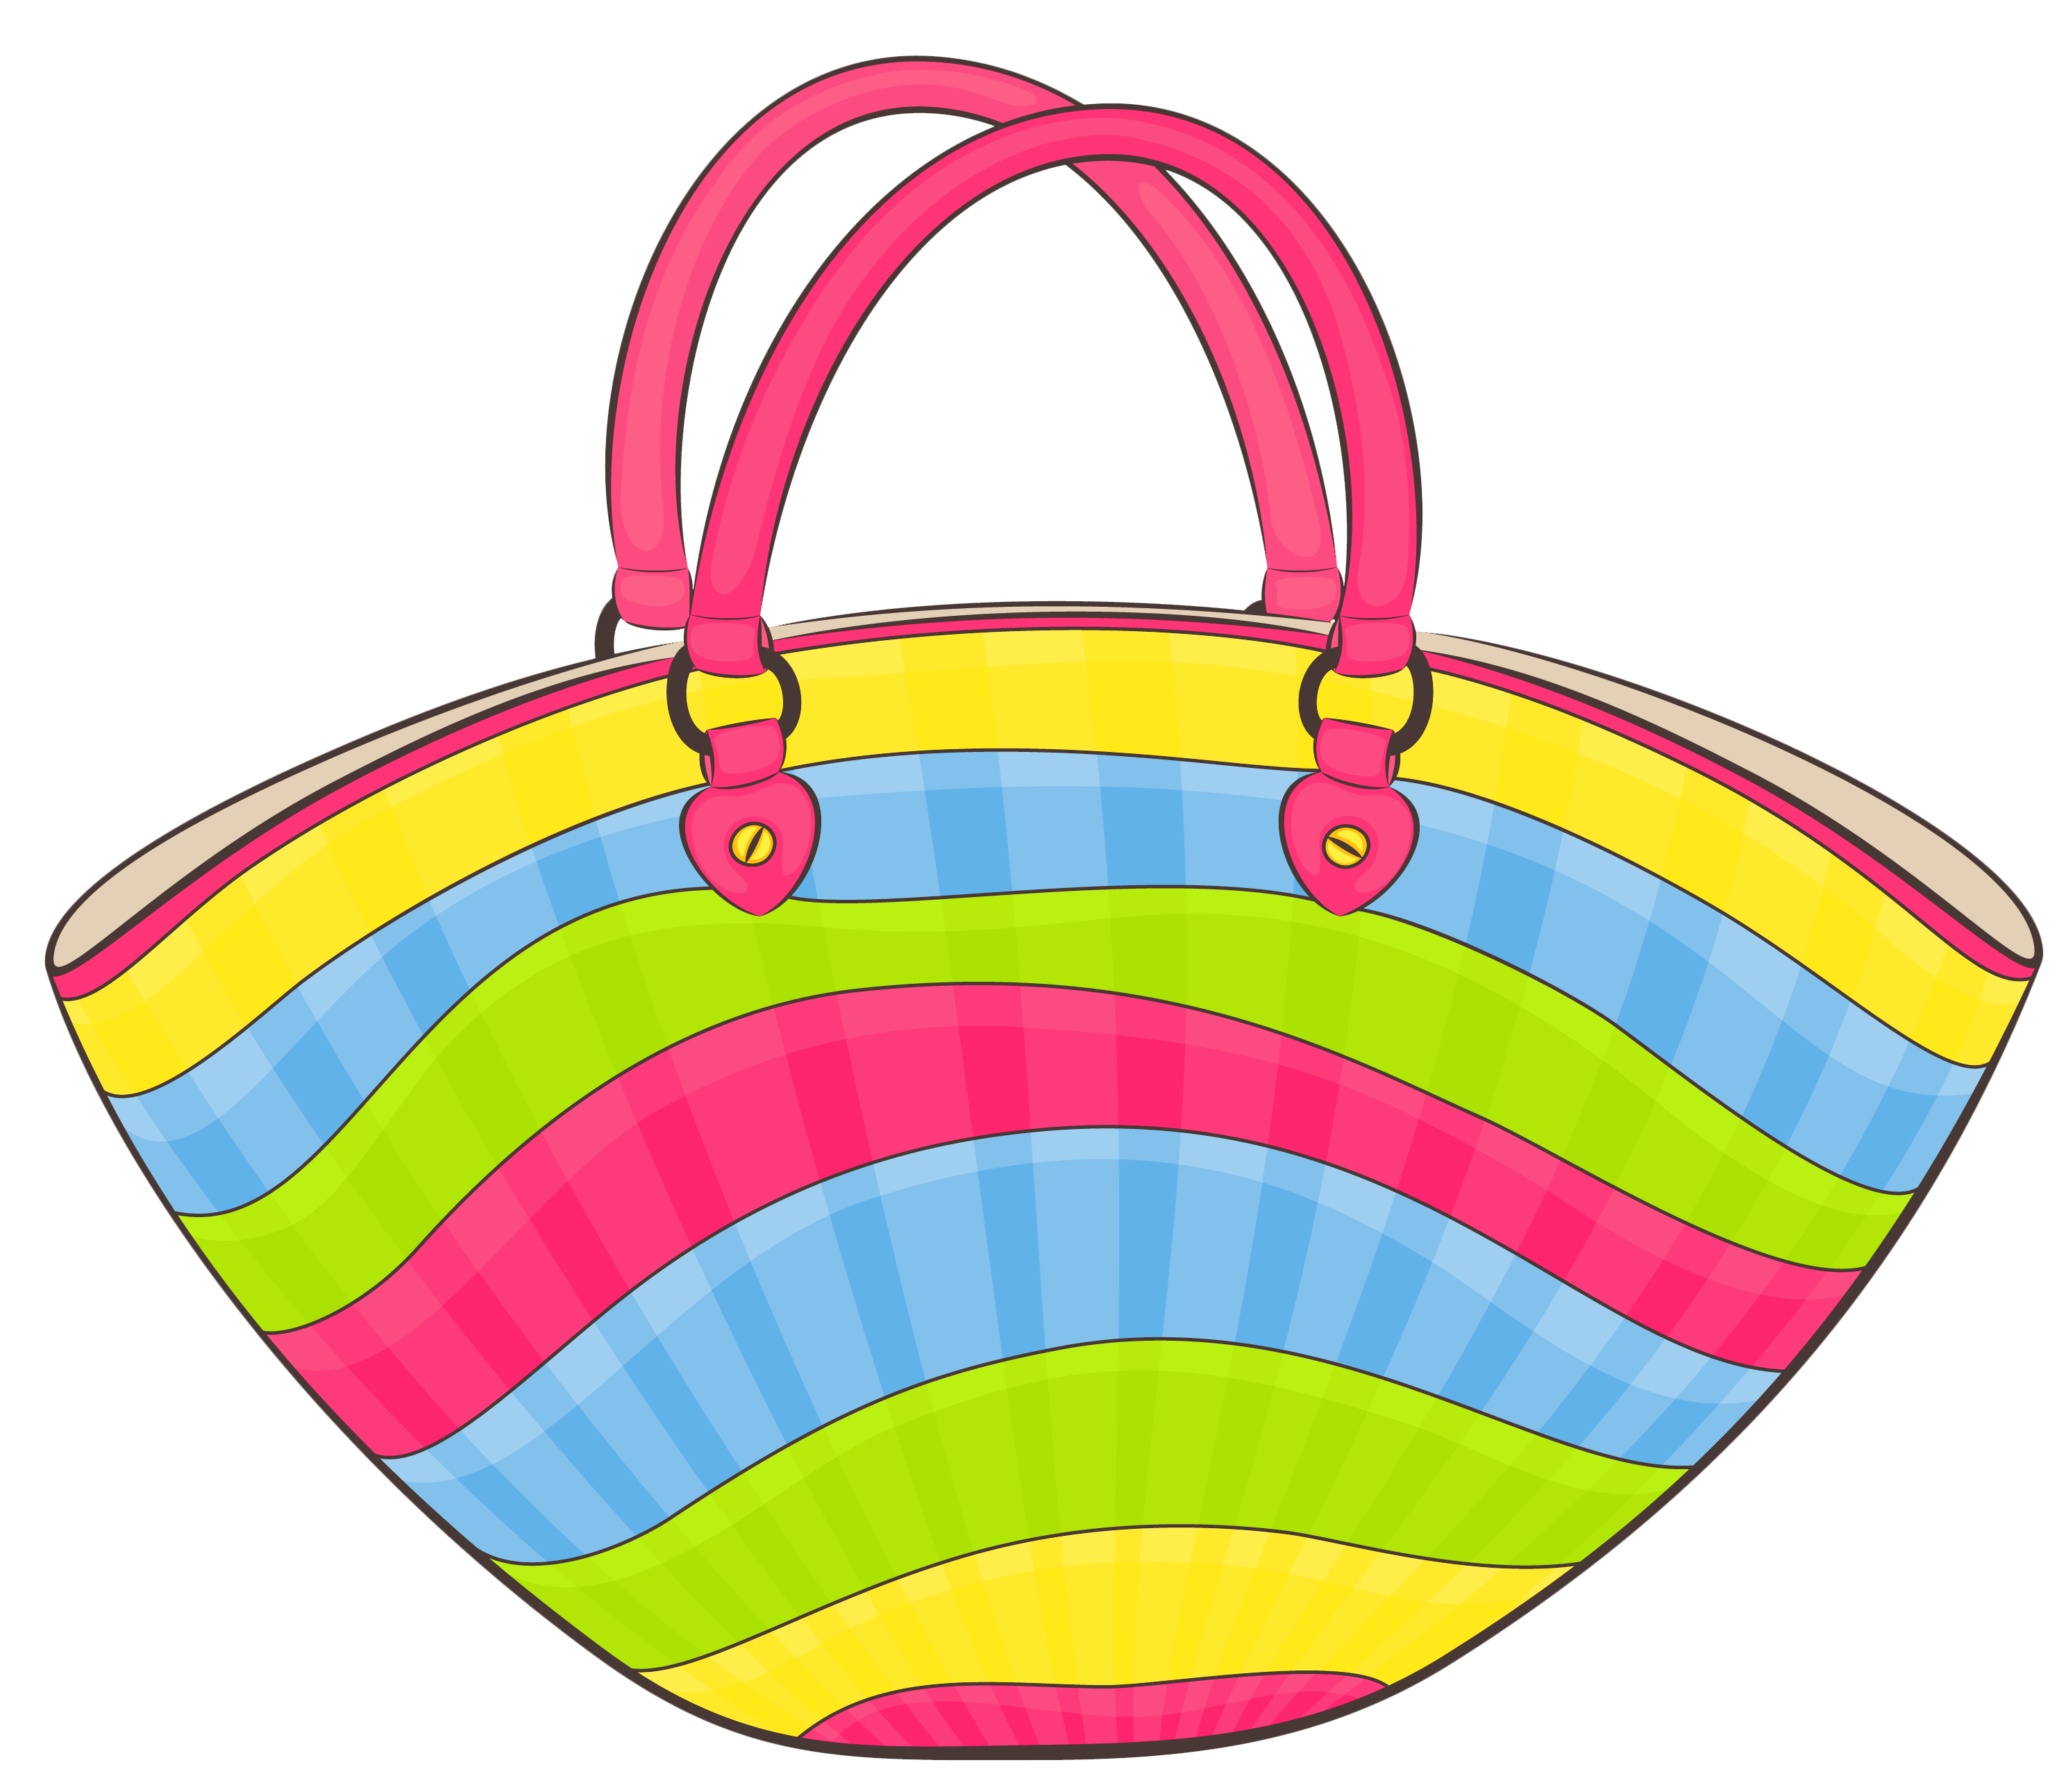 Towel transparent clipart beach. Collection of free bagged